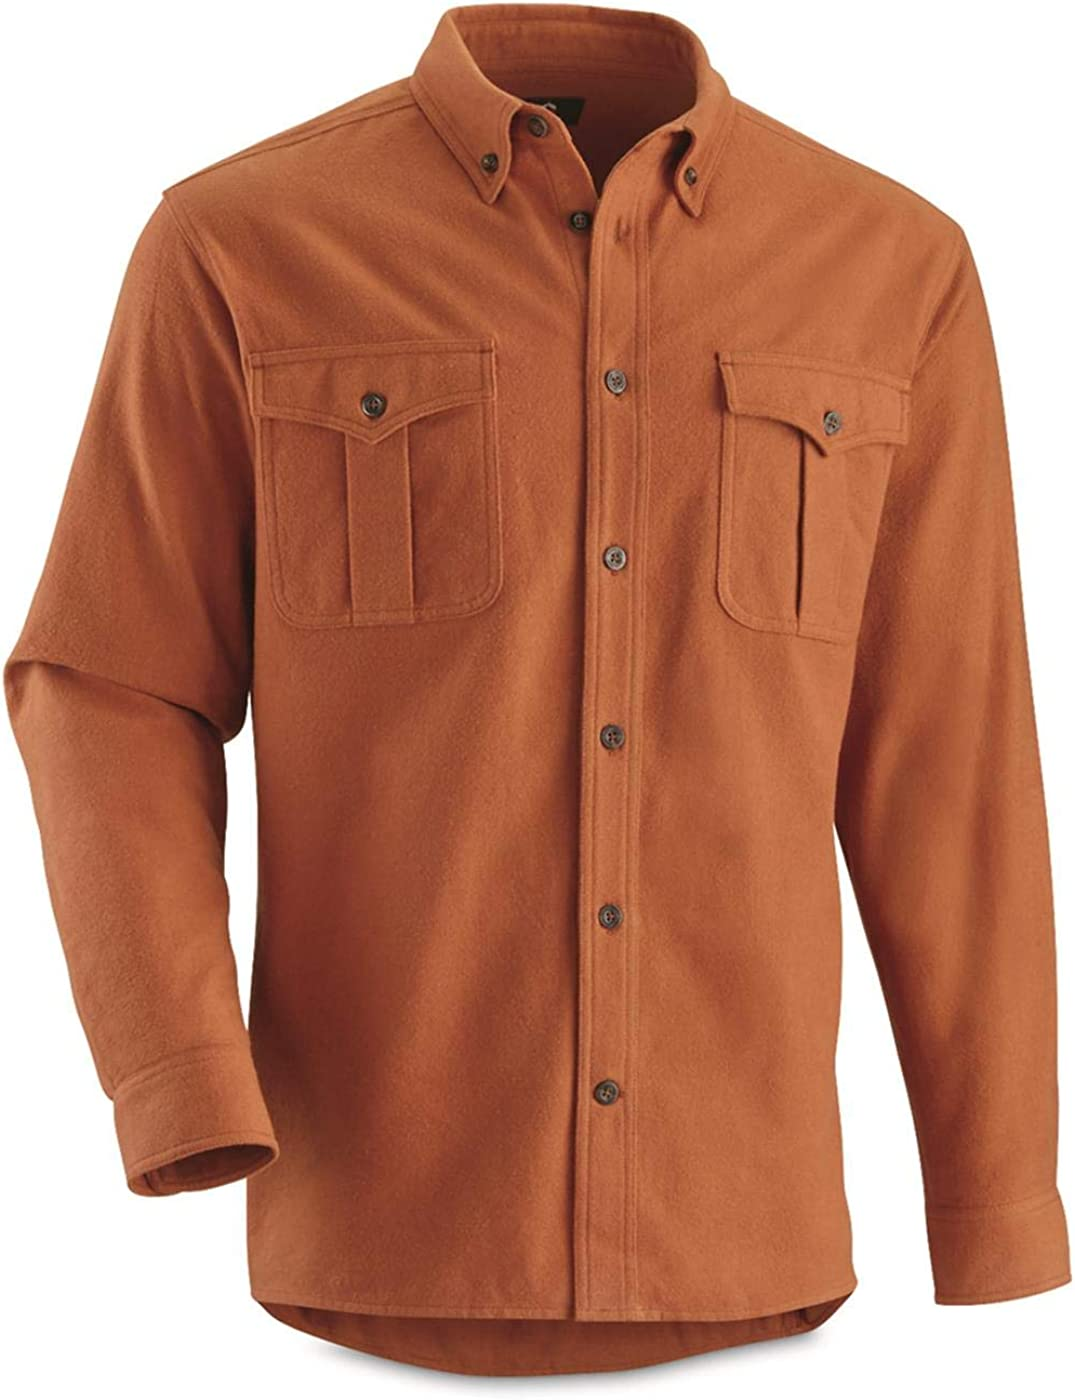 Guide Gear Men's Button Up Shirt Long Sleeve Chamois Cotton for Work Or Casual